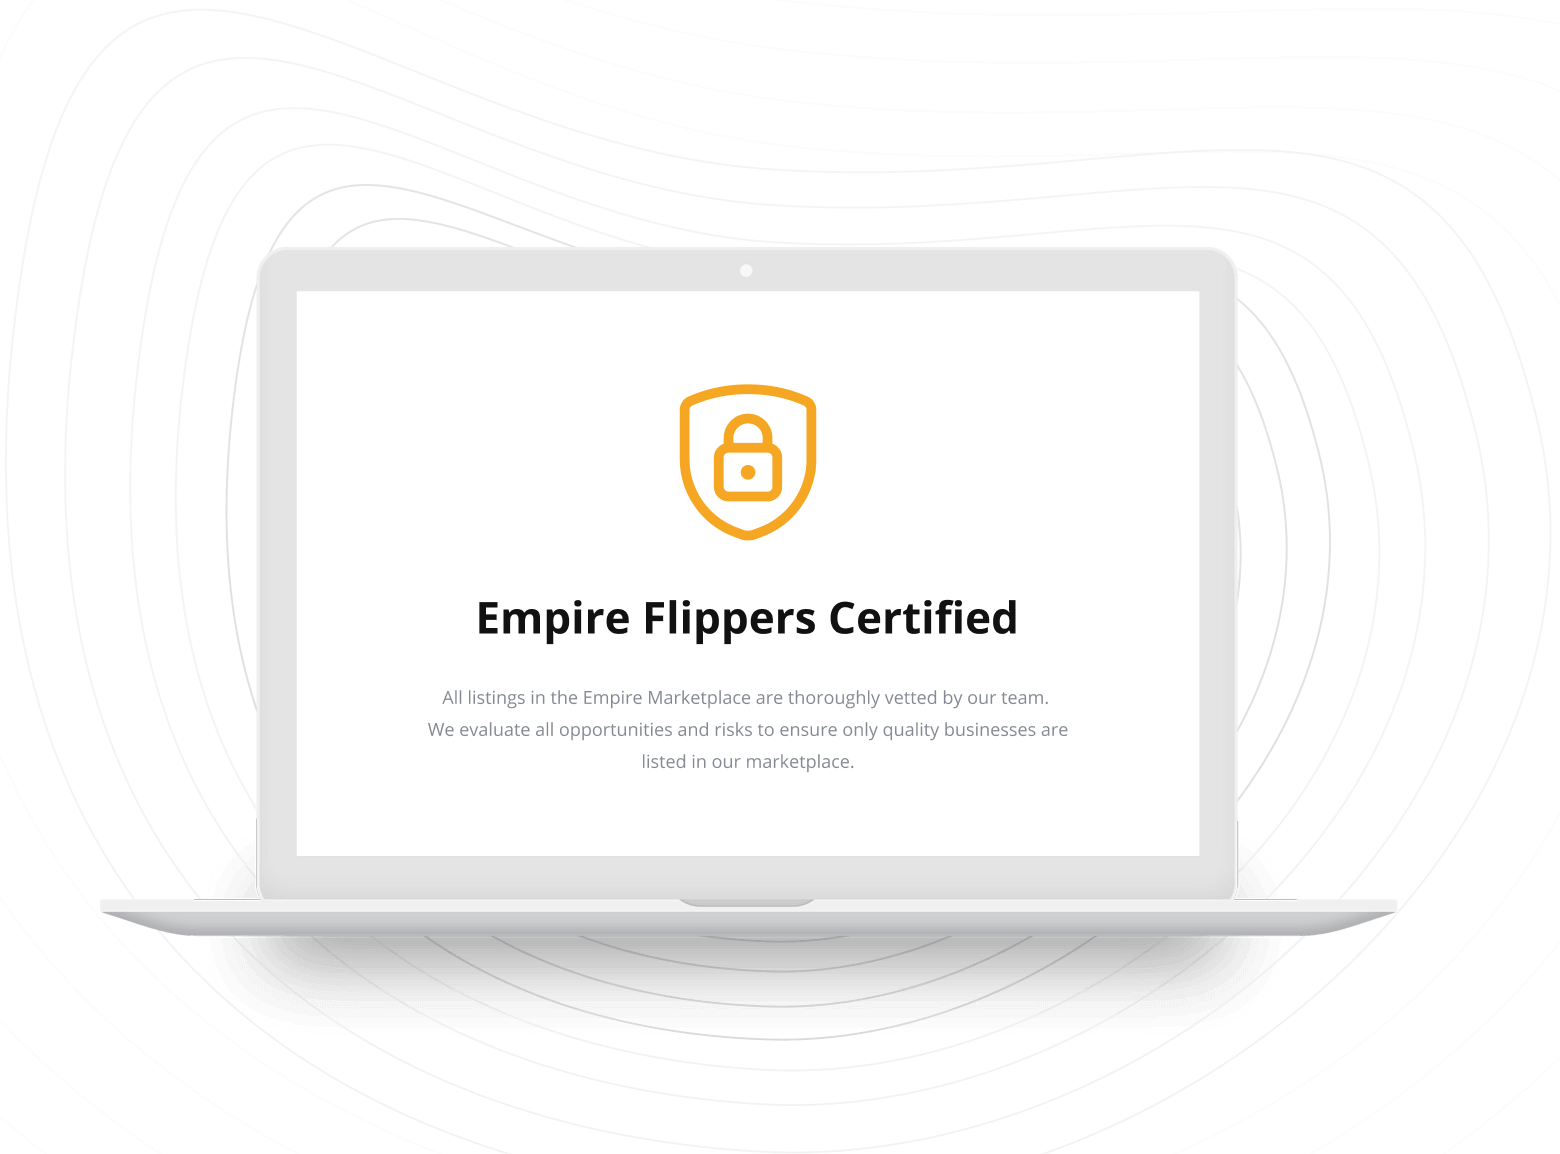 Empire Flippers Certified